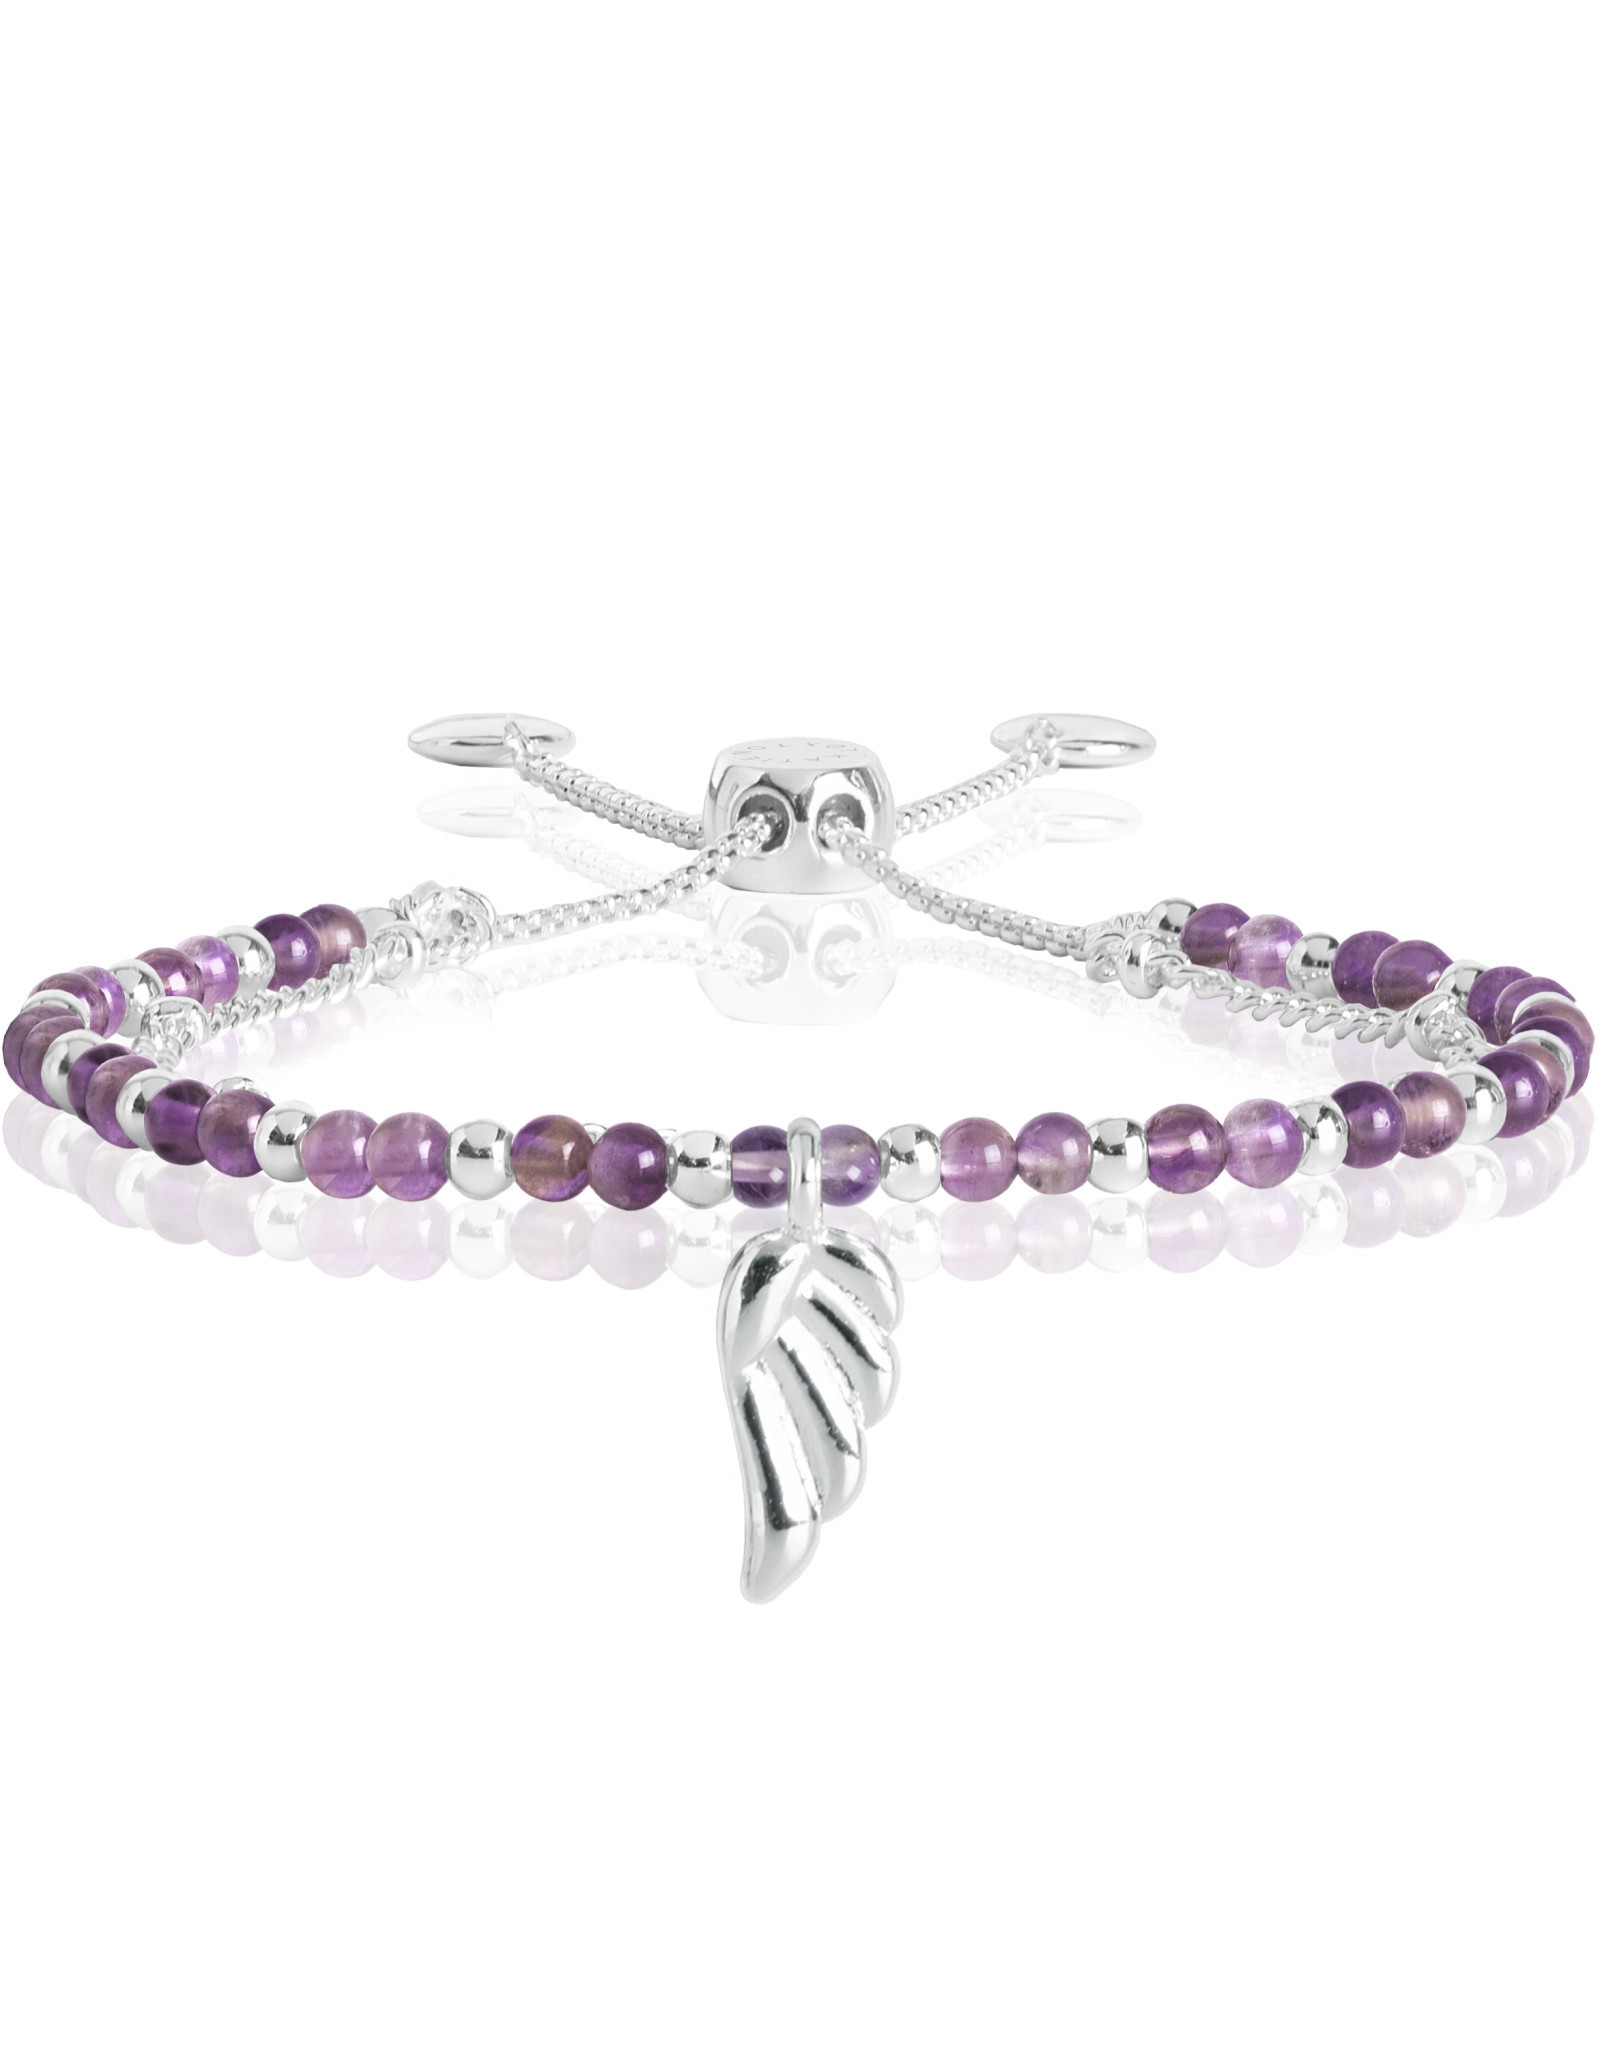 Katie Loxton KLSS - Family Bracelet - Silver with Amethyst Stones